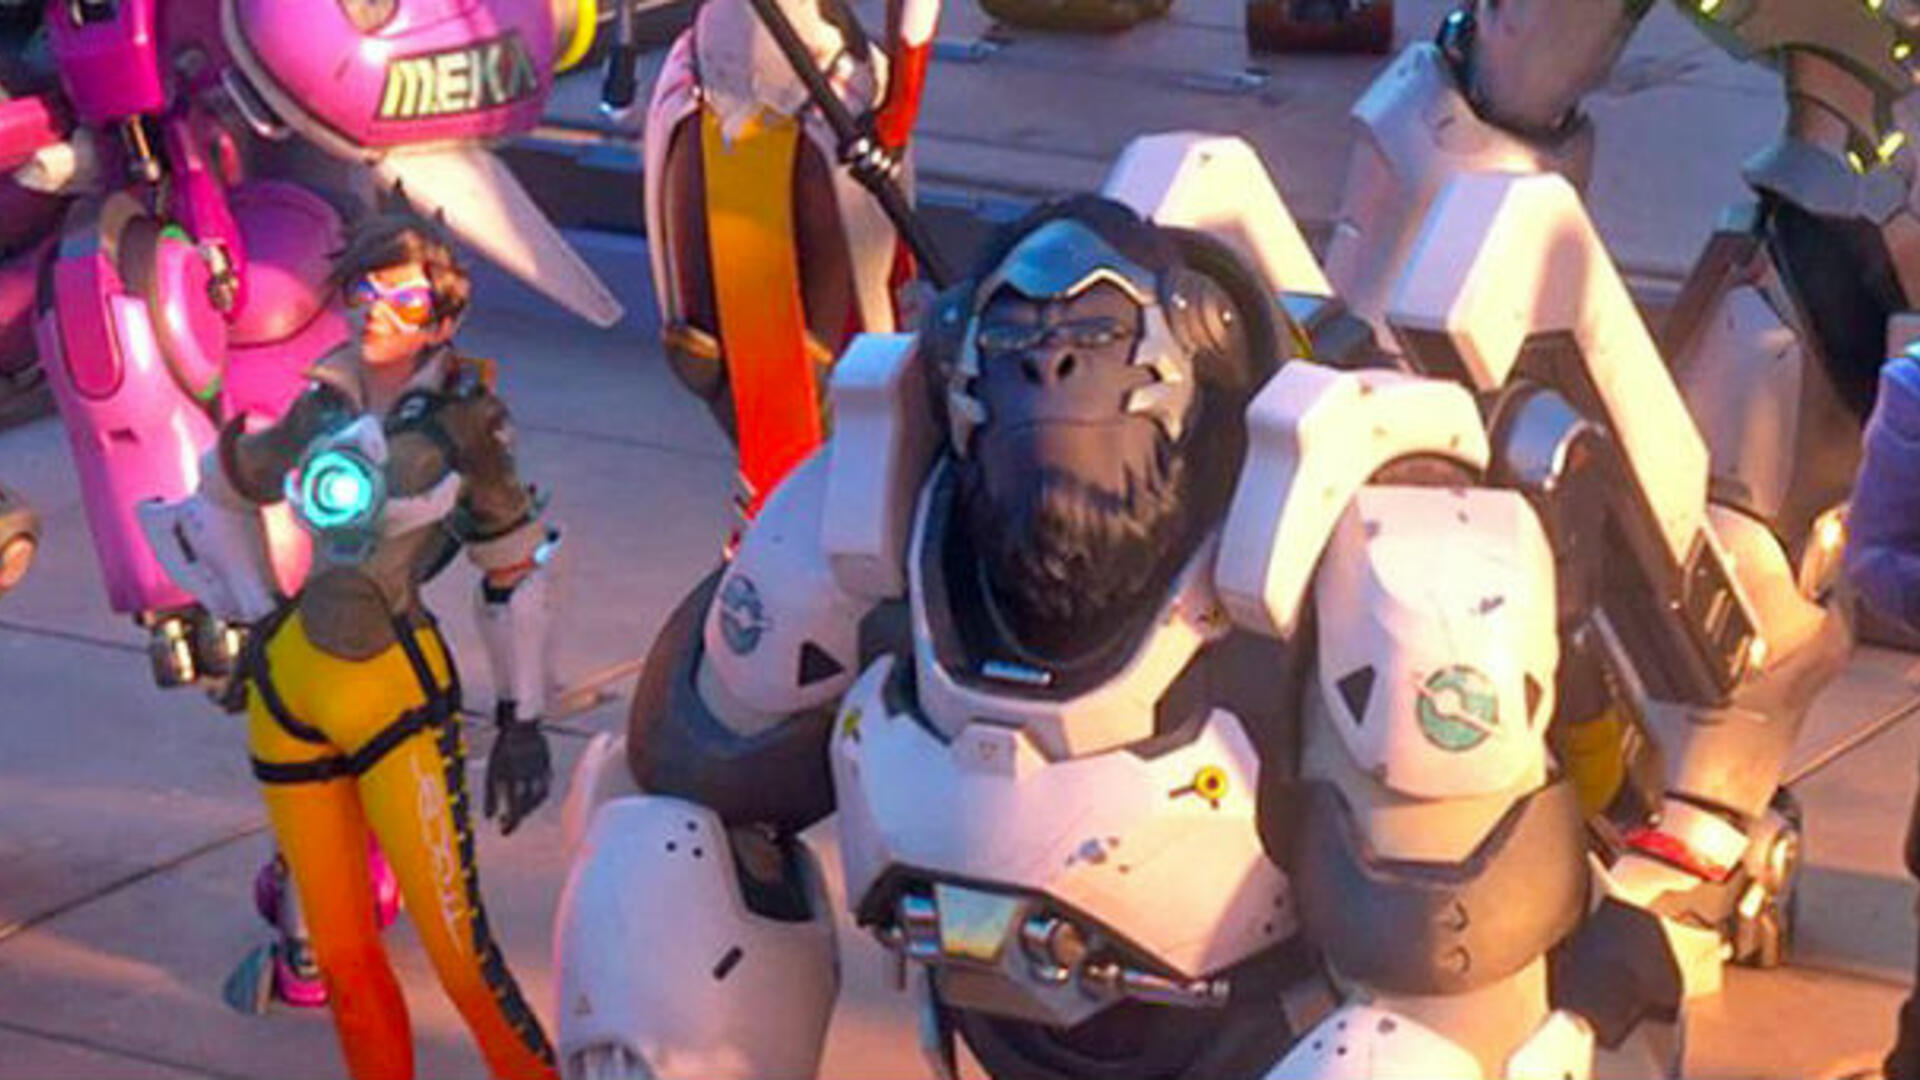 Epic Blizzard Black Friday Sale Includes Big Discounts on Overwatch, World of Warcraft, and Heroes of the Storm